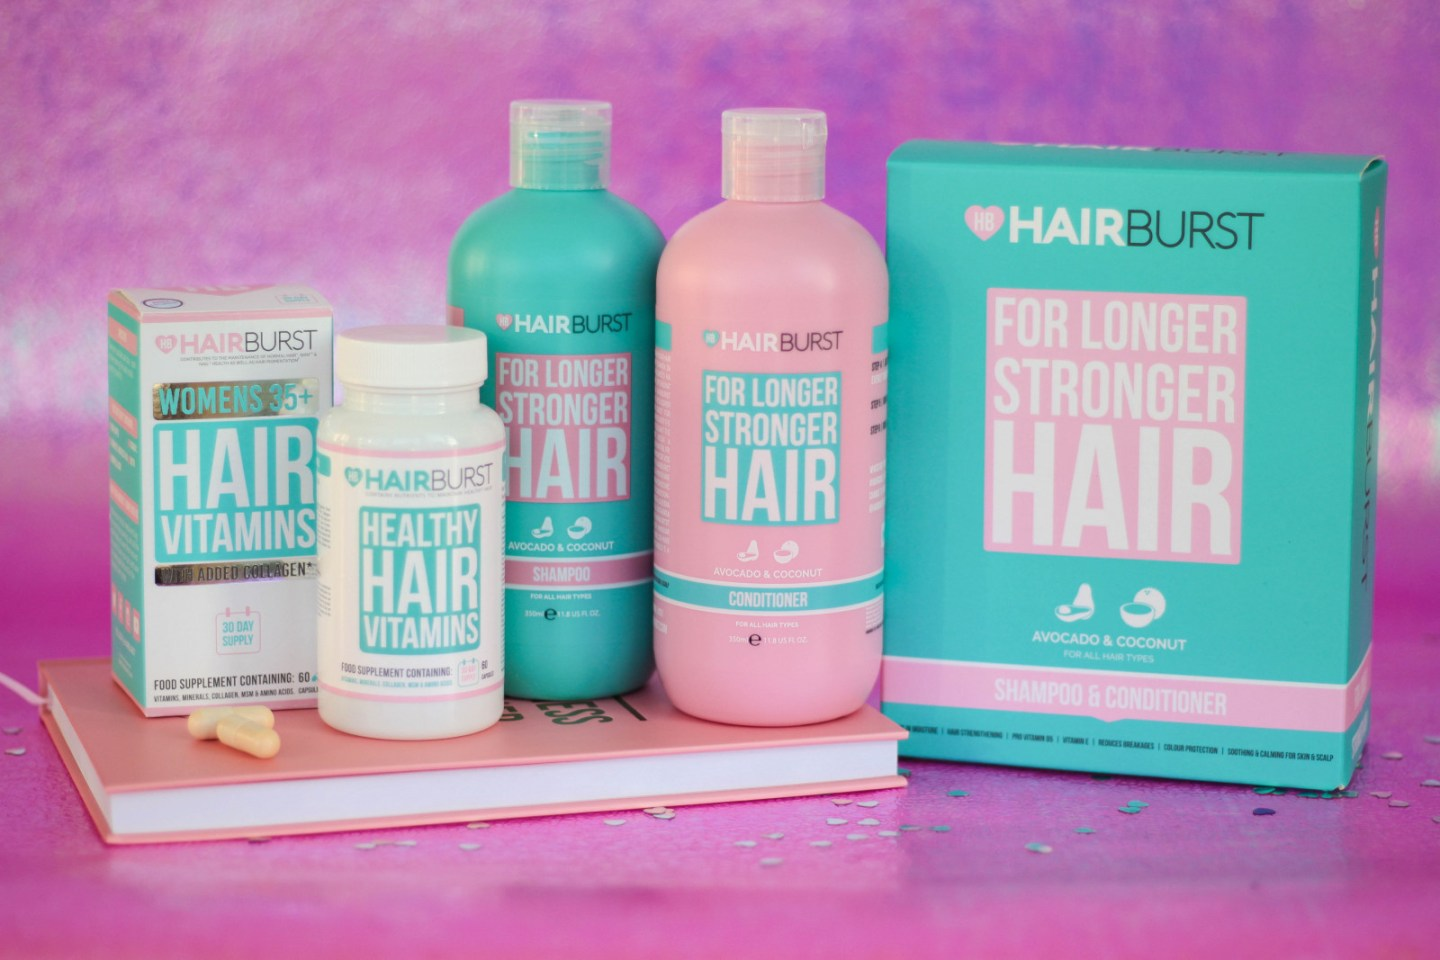 Does Hairburst Really Make Your Hair Grow?